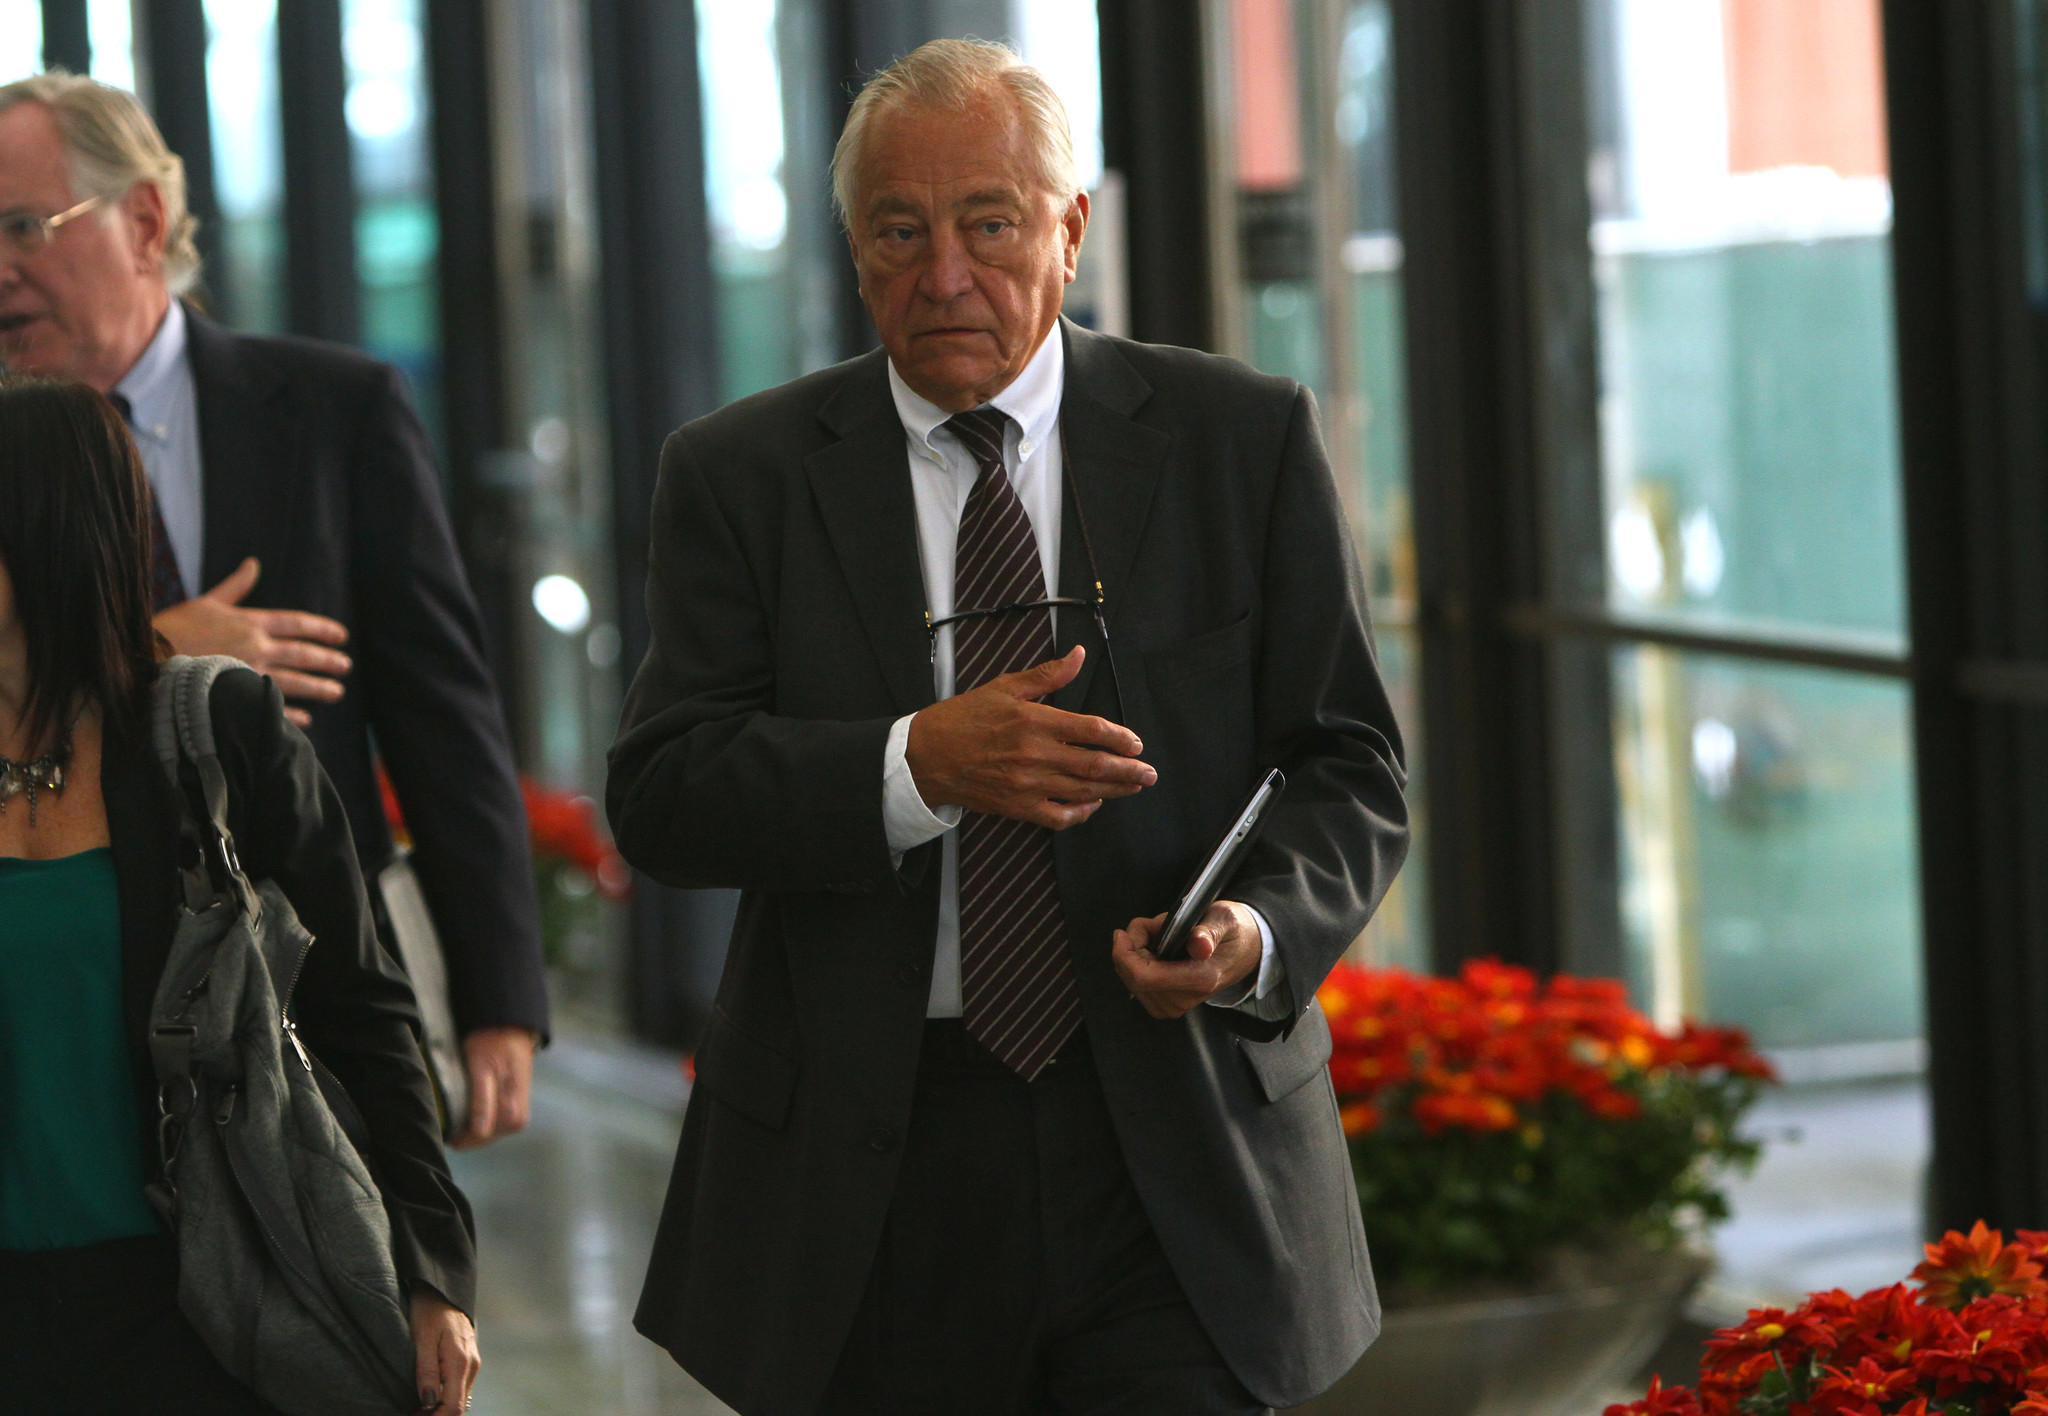 Ex Ald Ed Vrdolyak Indicted On Tax Charge In Tobacco